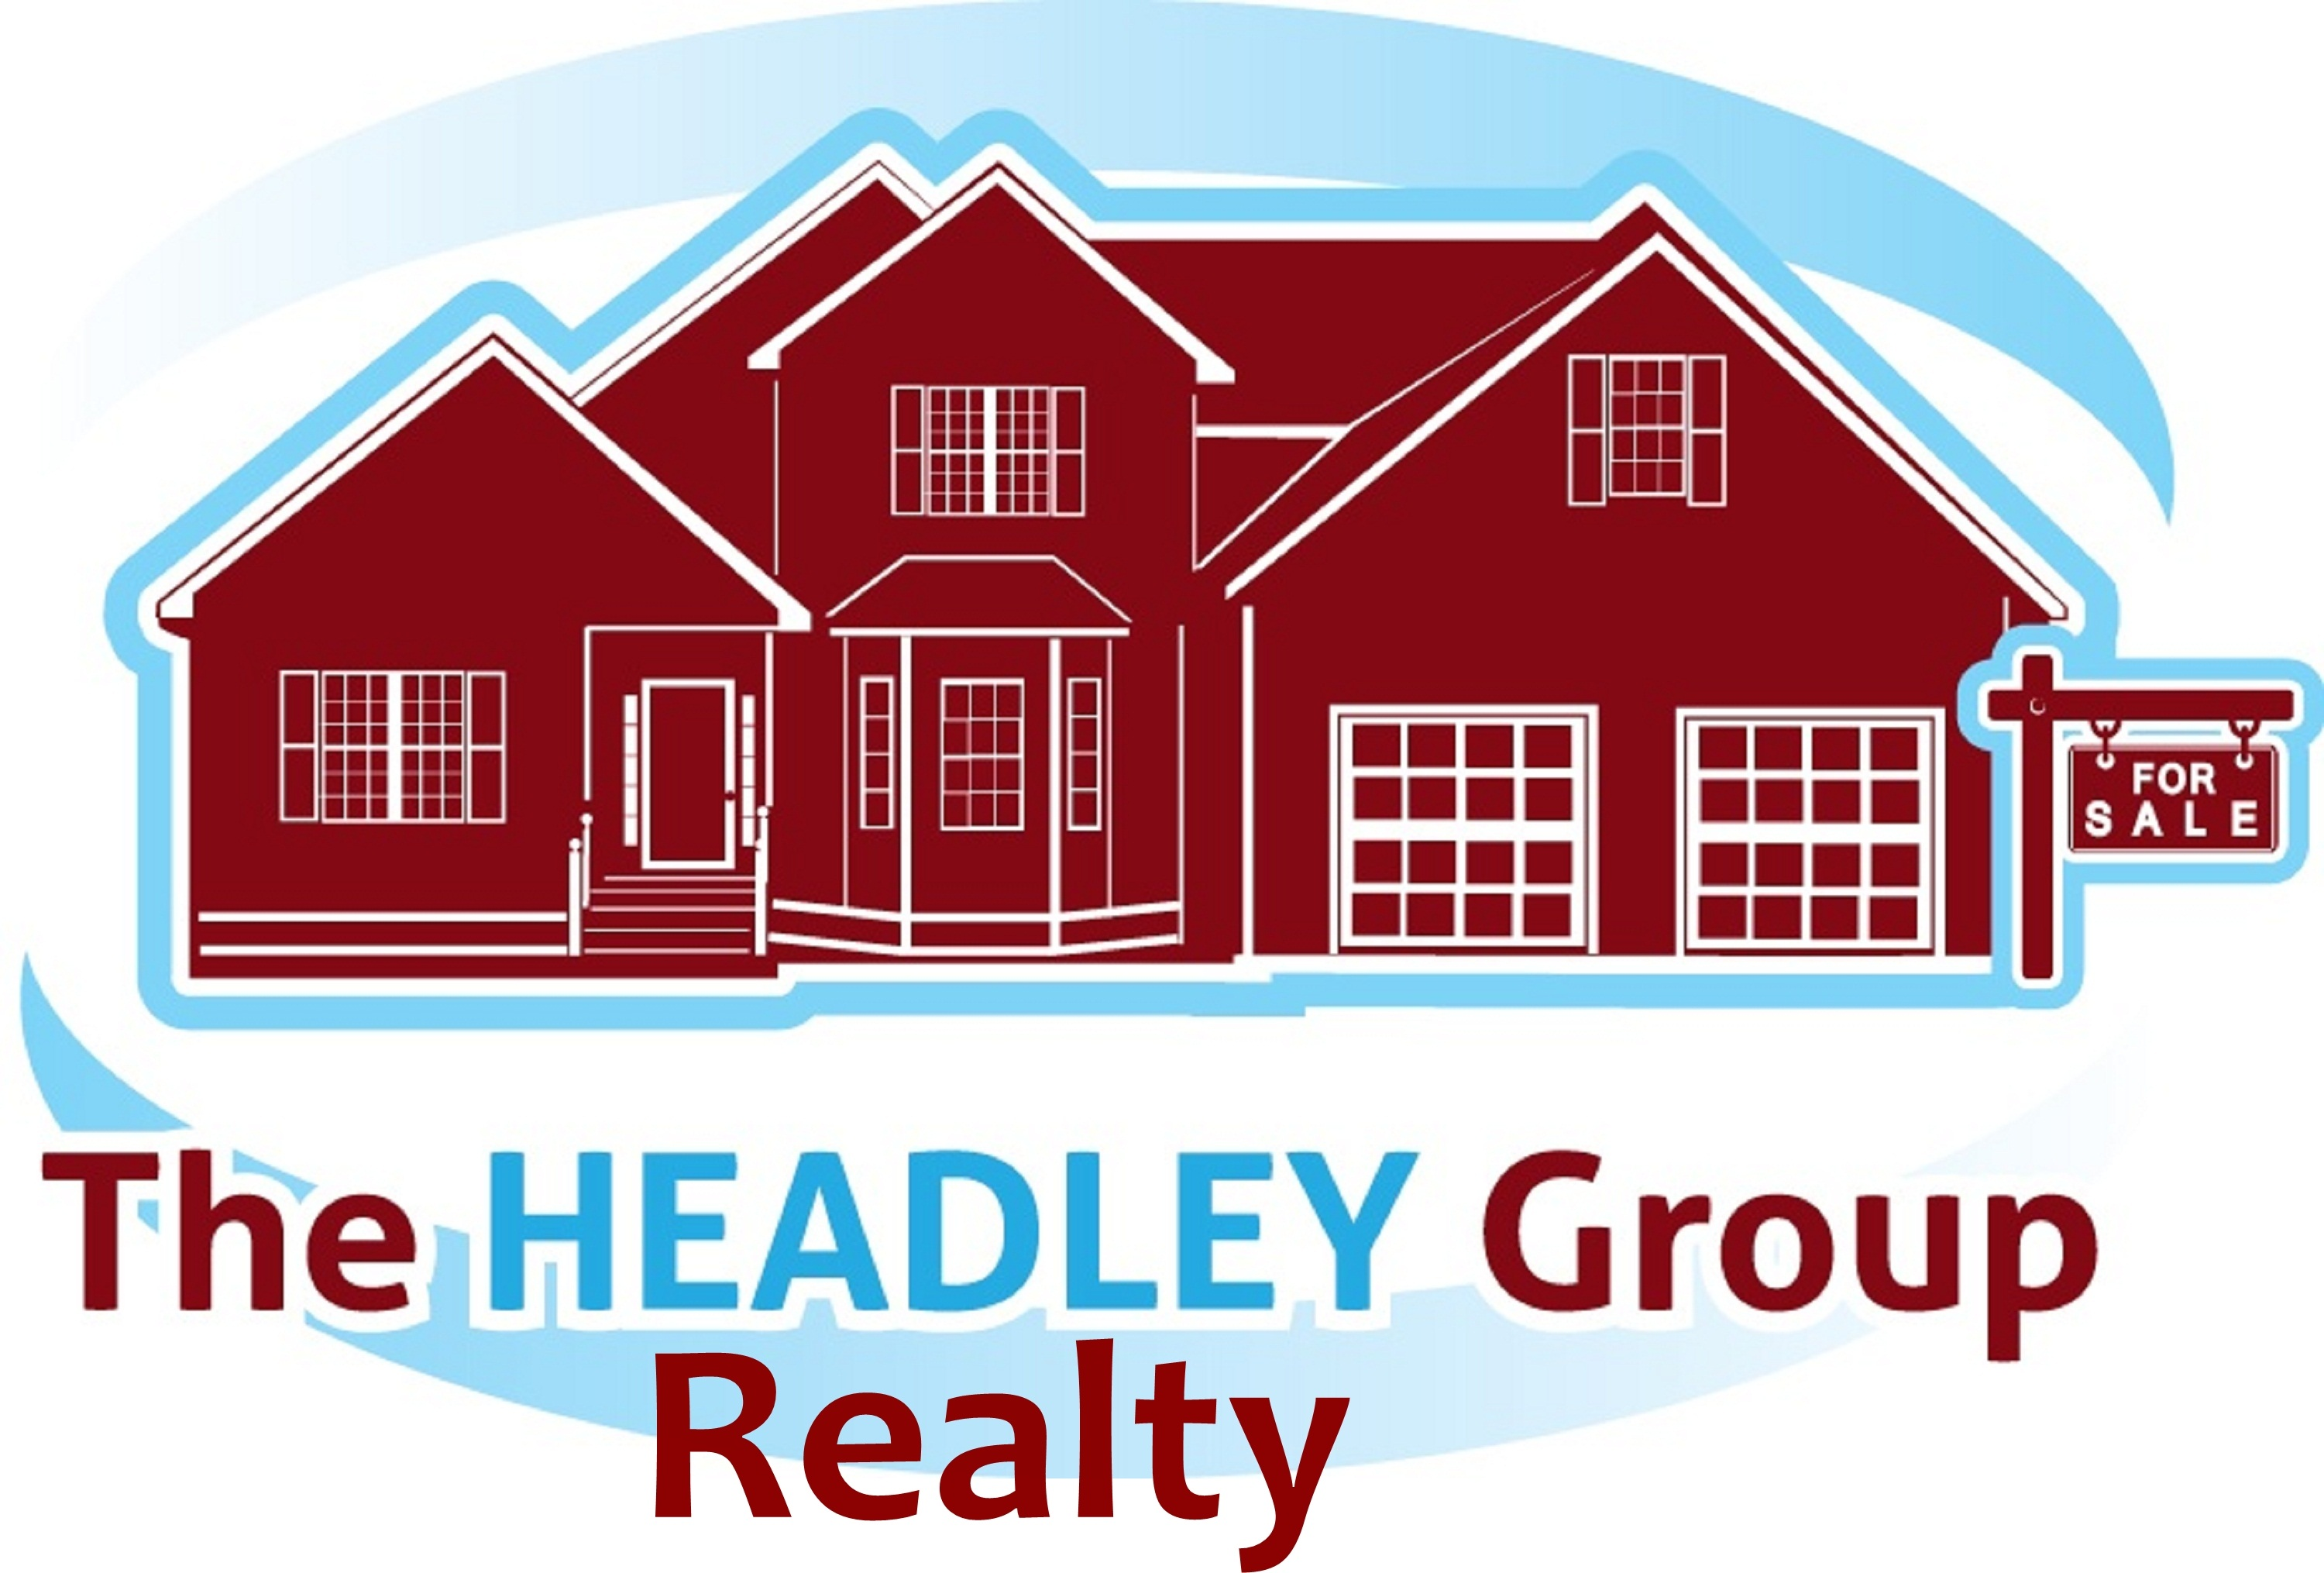 The Headley Group Realty